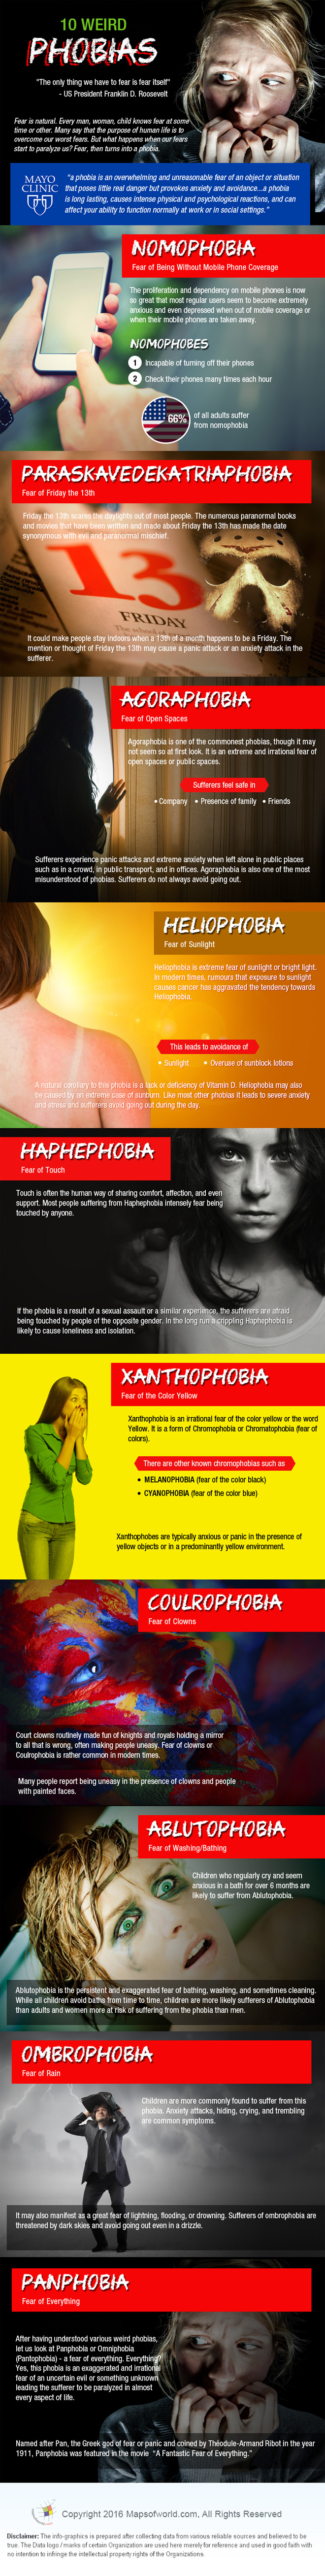 Infographic on top ten phobia